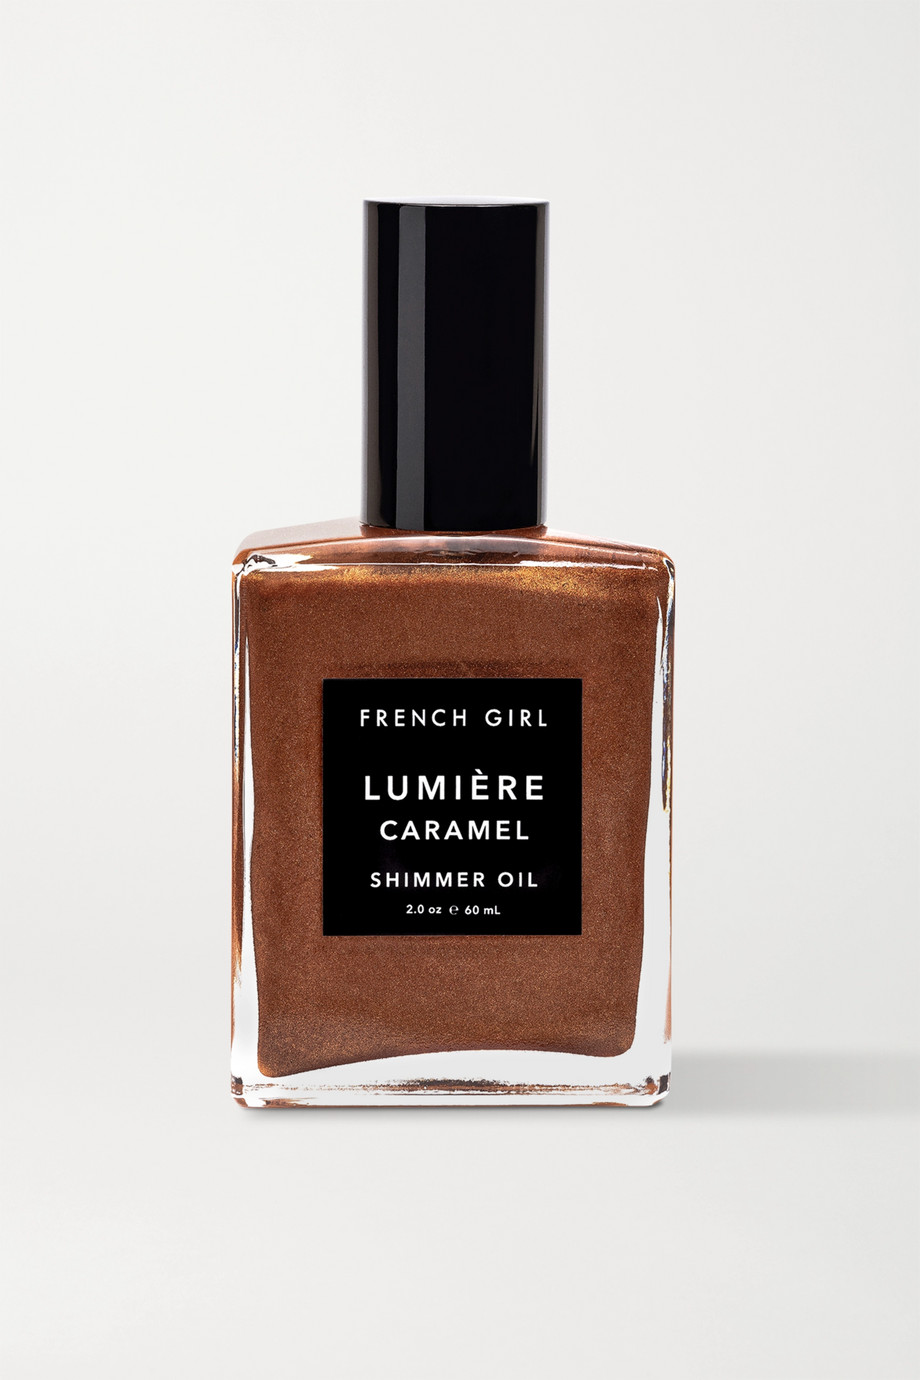 FRENCH GIRL ORGANICS Lumière Caramel Shimmer Oil, 60ml